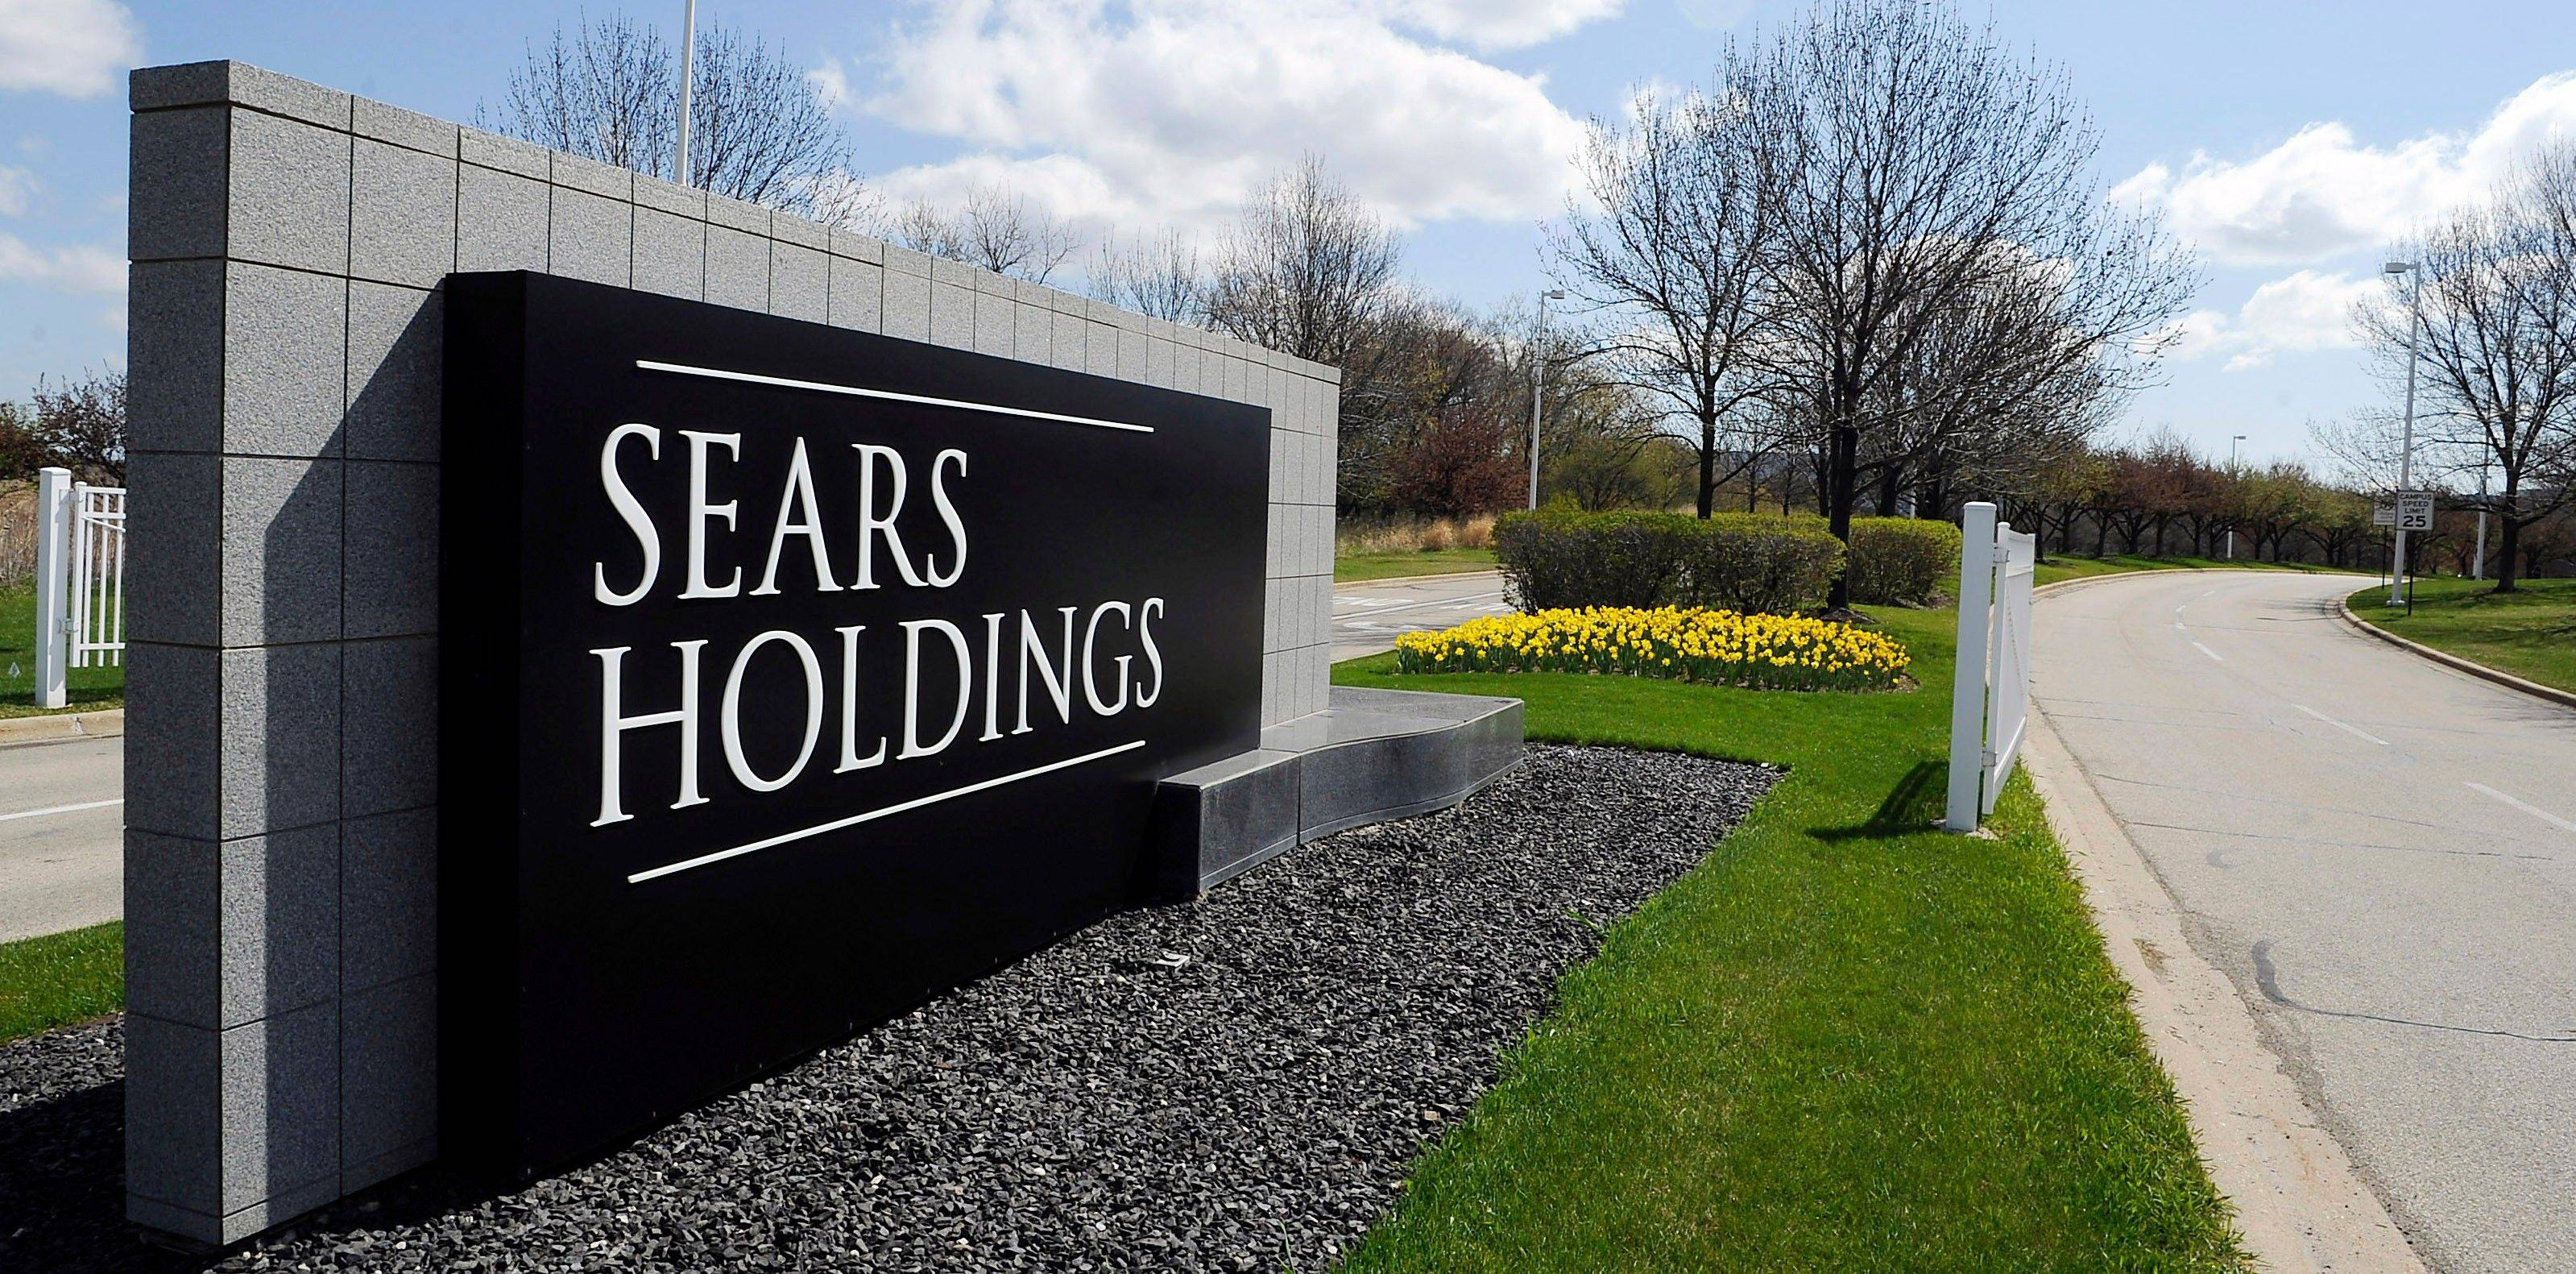 The Senate has approved tax breaks for Sears Holdings Corp. in Hoffman Estates.